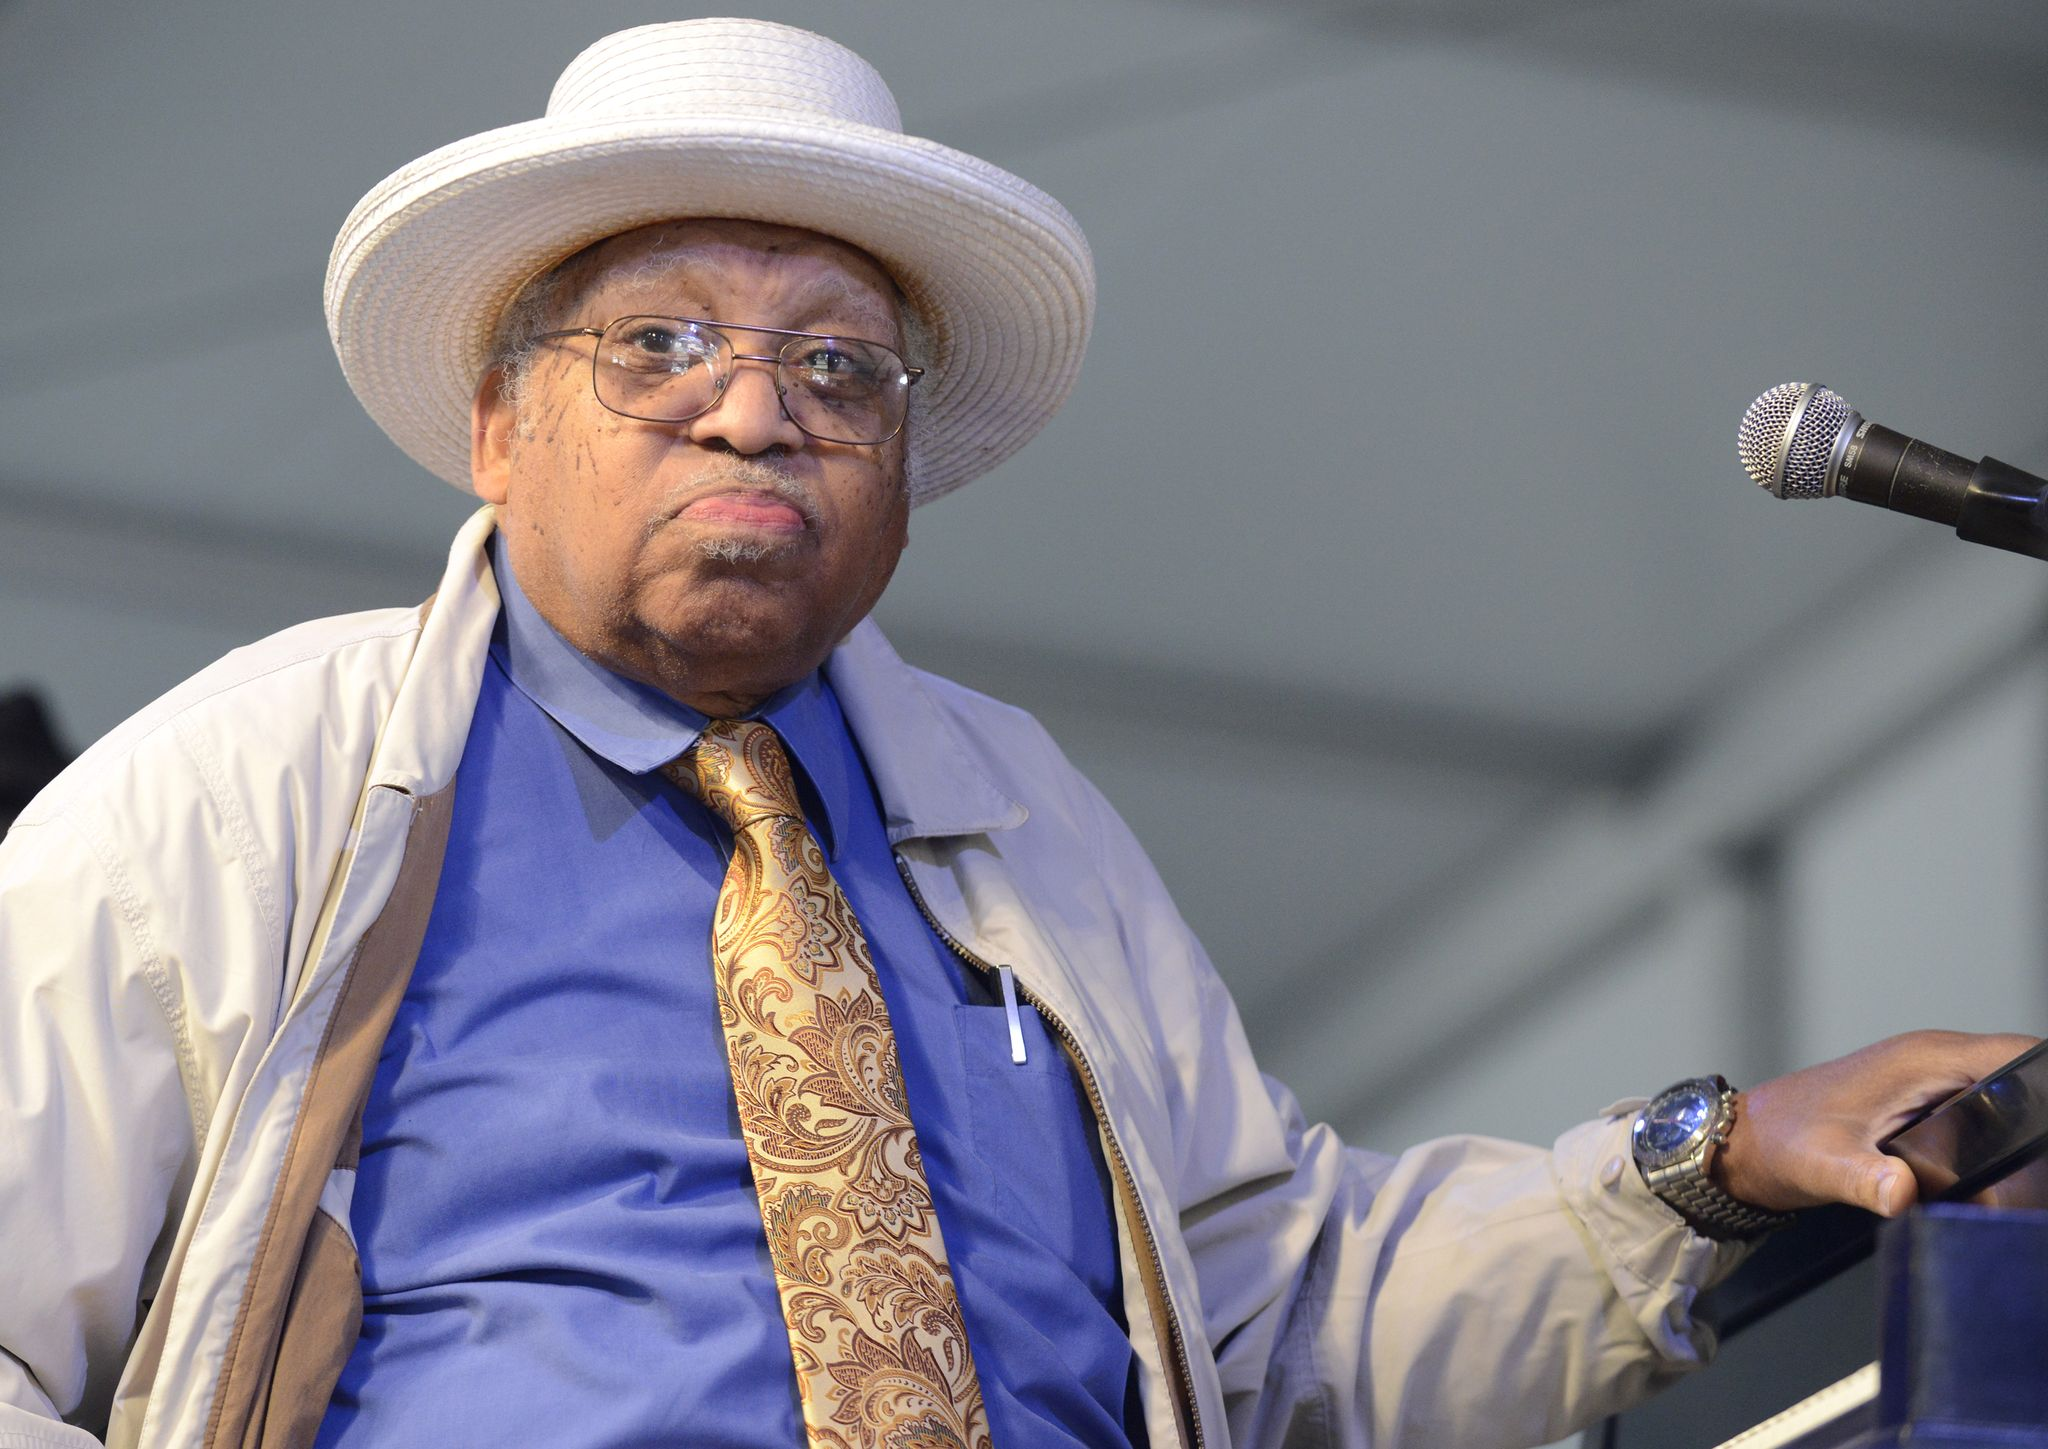 Ellis Marsalis performs as part of the 2013 New Orleans Jazz & Heritage Festival at Fair Grounds Race Course on May 5, 2013 | Photo: Getty Images